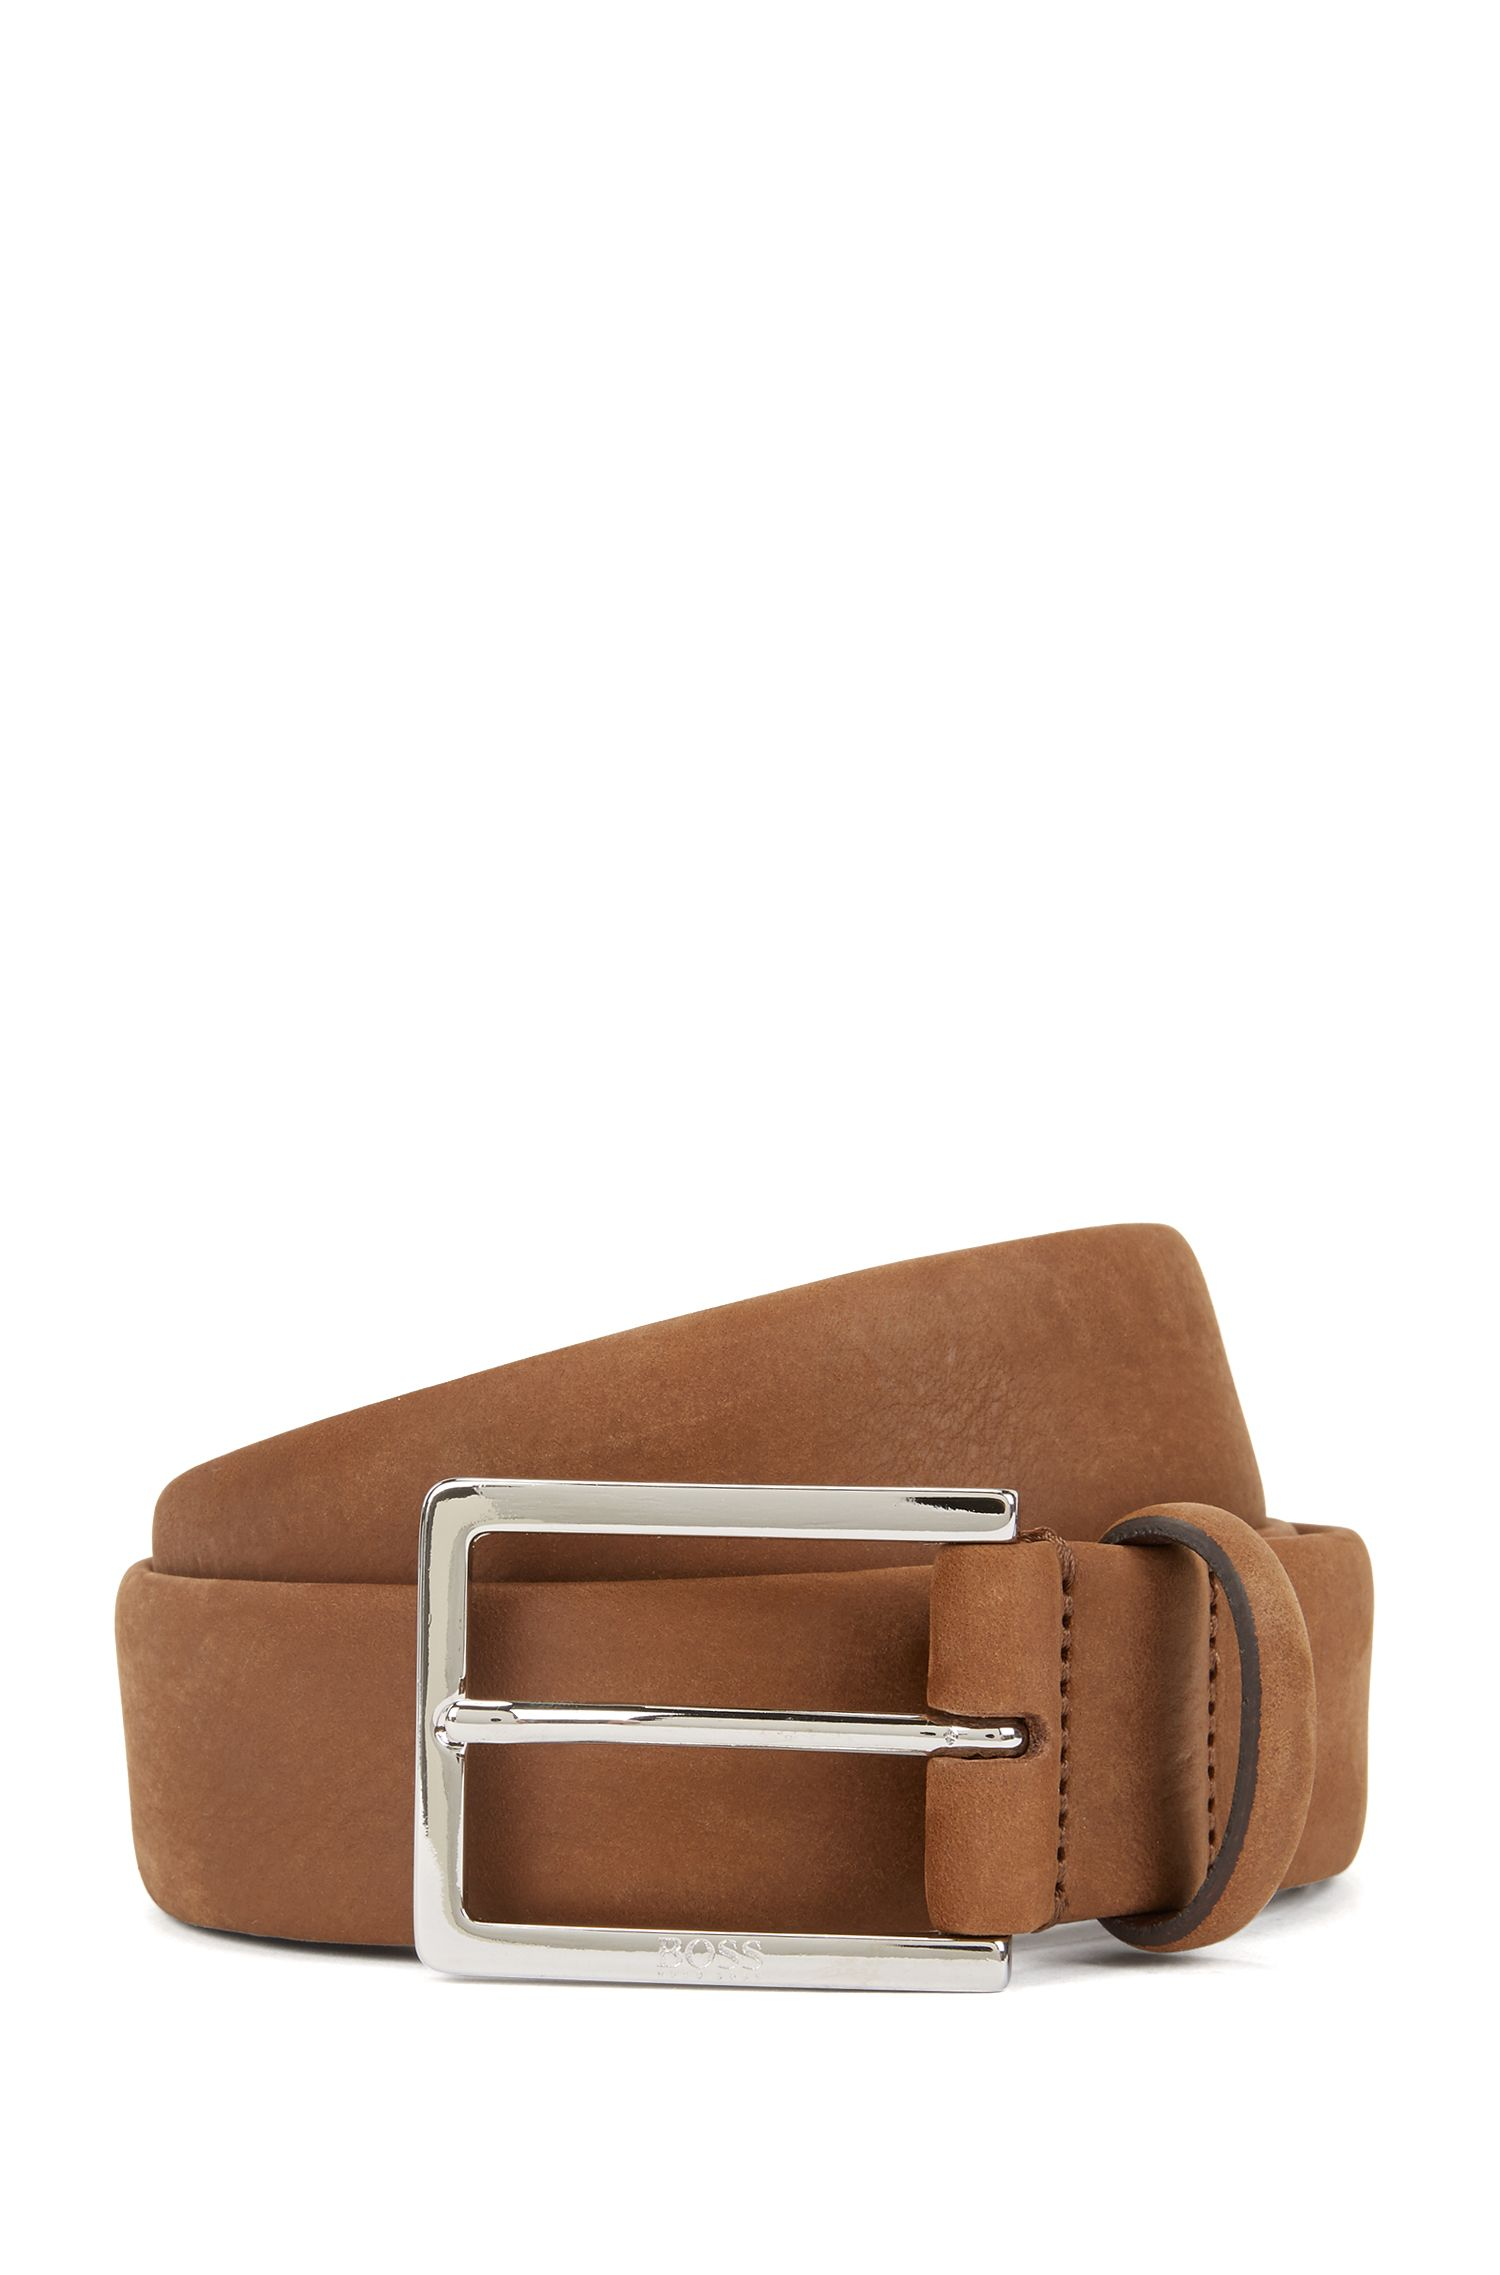 Nubuck leather belt with soft tubular construction